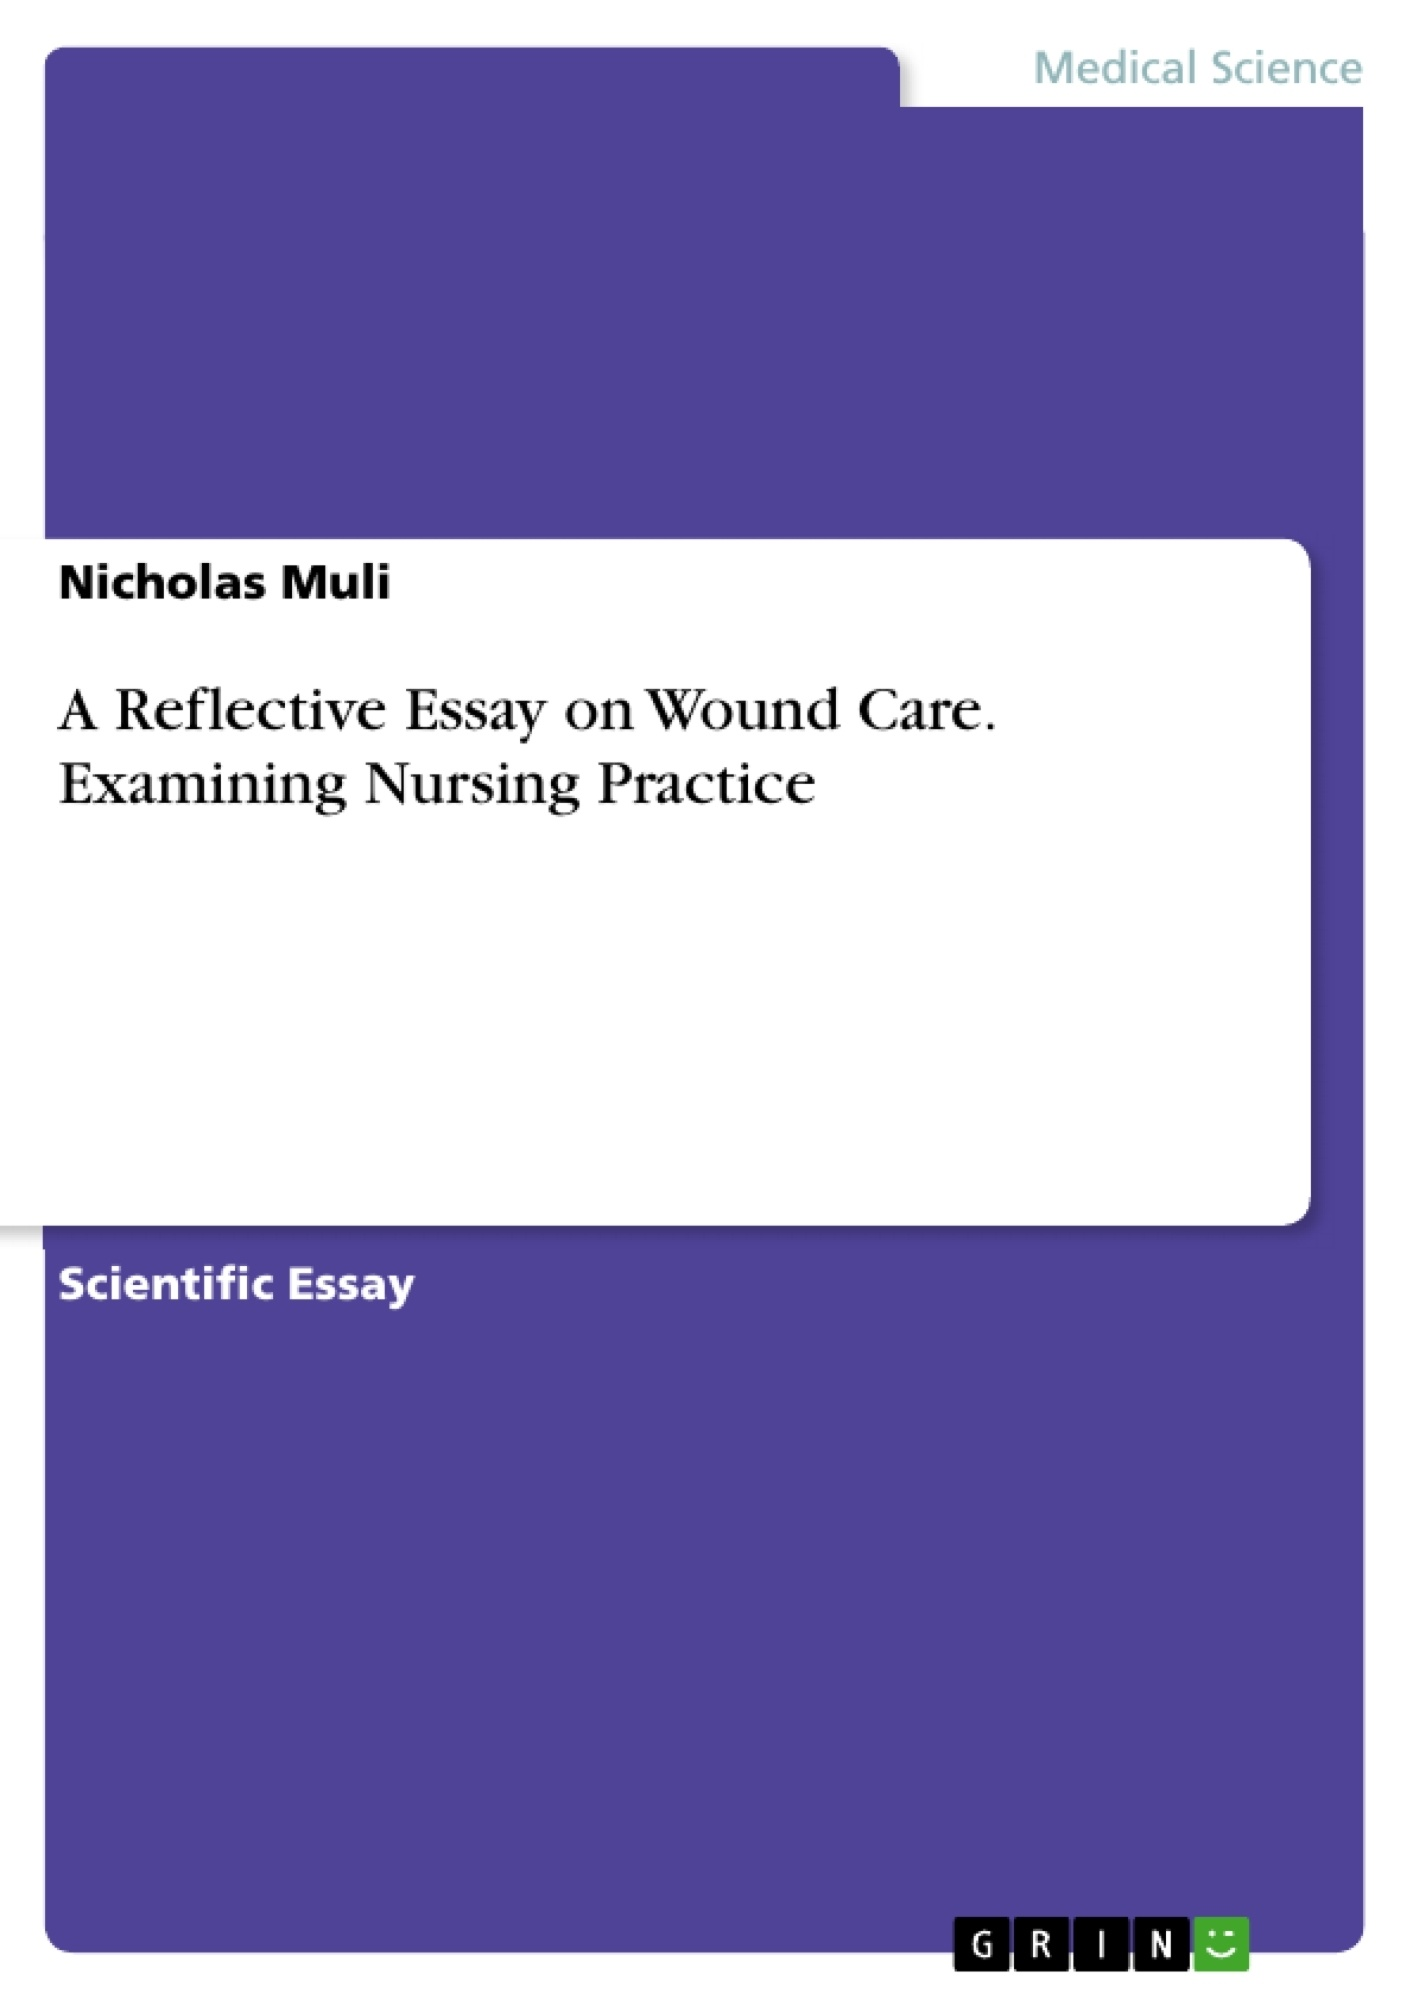 Nursing critical thinking case scenarios photo 2